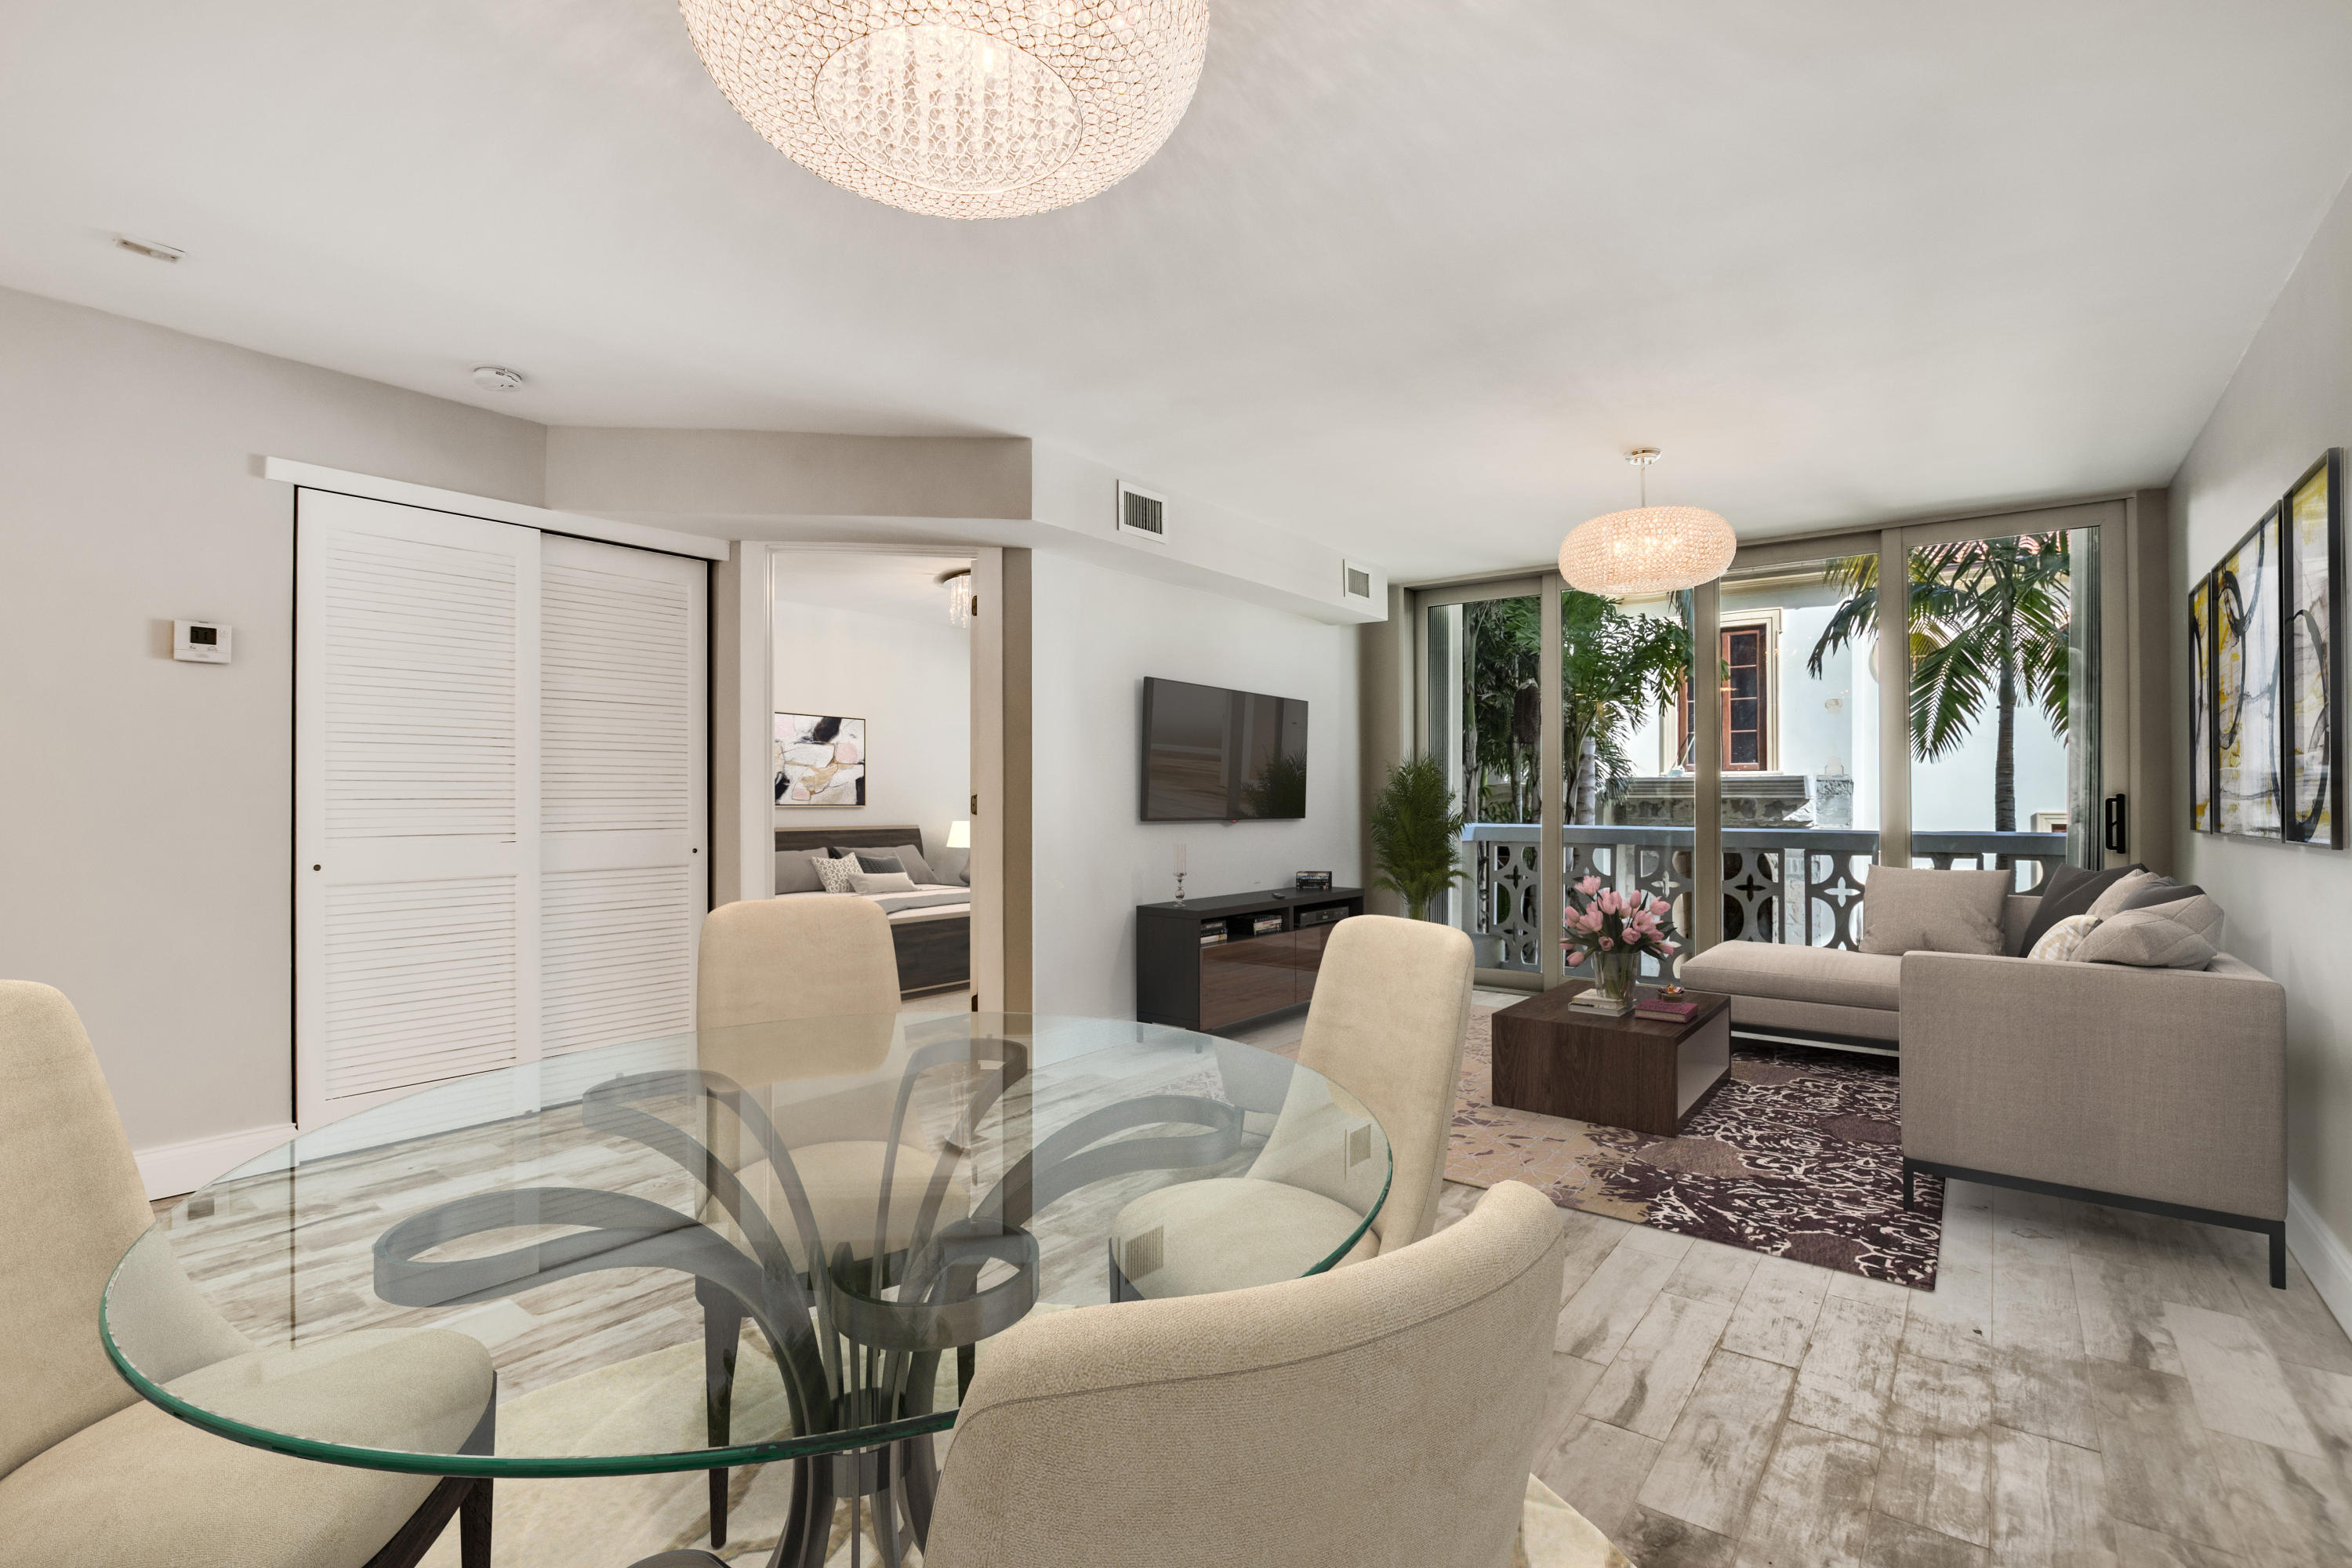 Brazilian Of Palm Beach Condo Lt 4 Blk E Royal Park 227 Brazilian Avenue